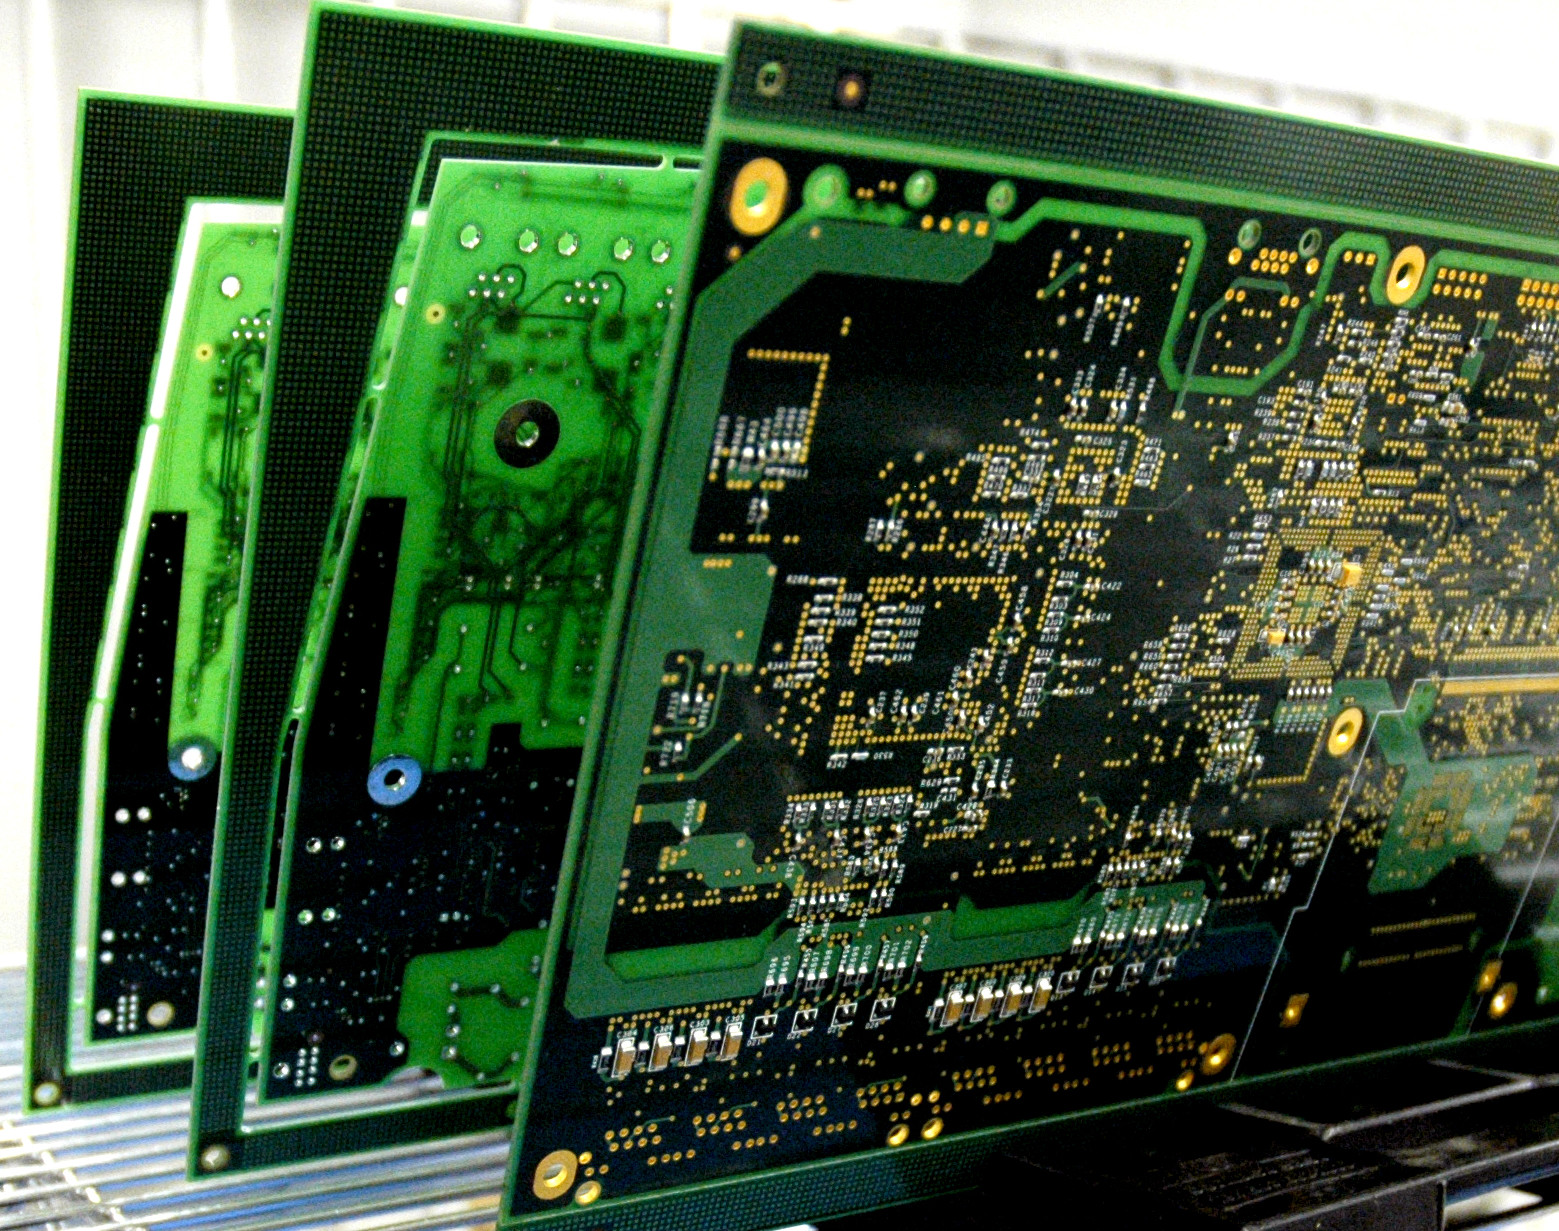 circuit board fabricators case study solutions New topic fit food inc case study new topic krispy kreme doughnuts inc case study analysis new topic just for feet inc case study inc case study new topic optical distortion inc case analysis new topic florence v board of chosen freeholders case brief new topic holderness case study new topic tyco case study dell inc a case study.